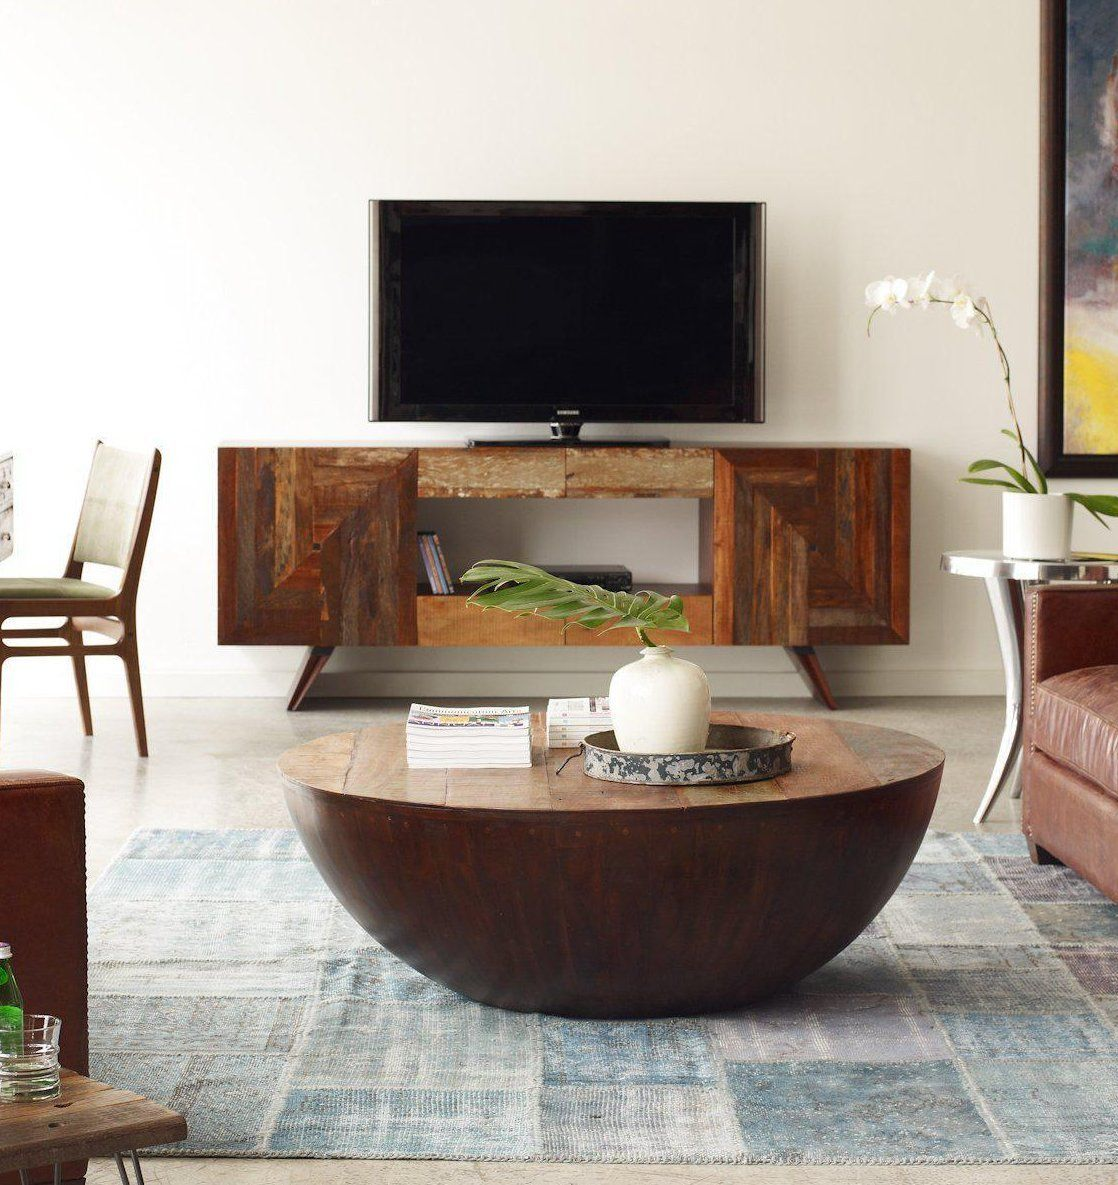 Rex 83 Coffee Table Round Wooden Coffee Table Round Coffee Table Rustic [ 1185 x 1118 Pixel ]